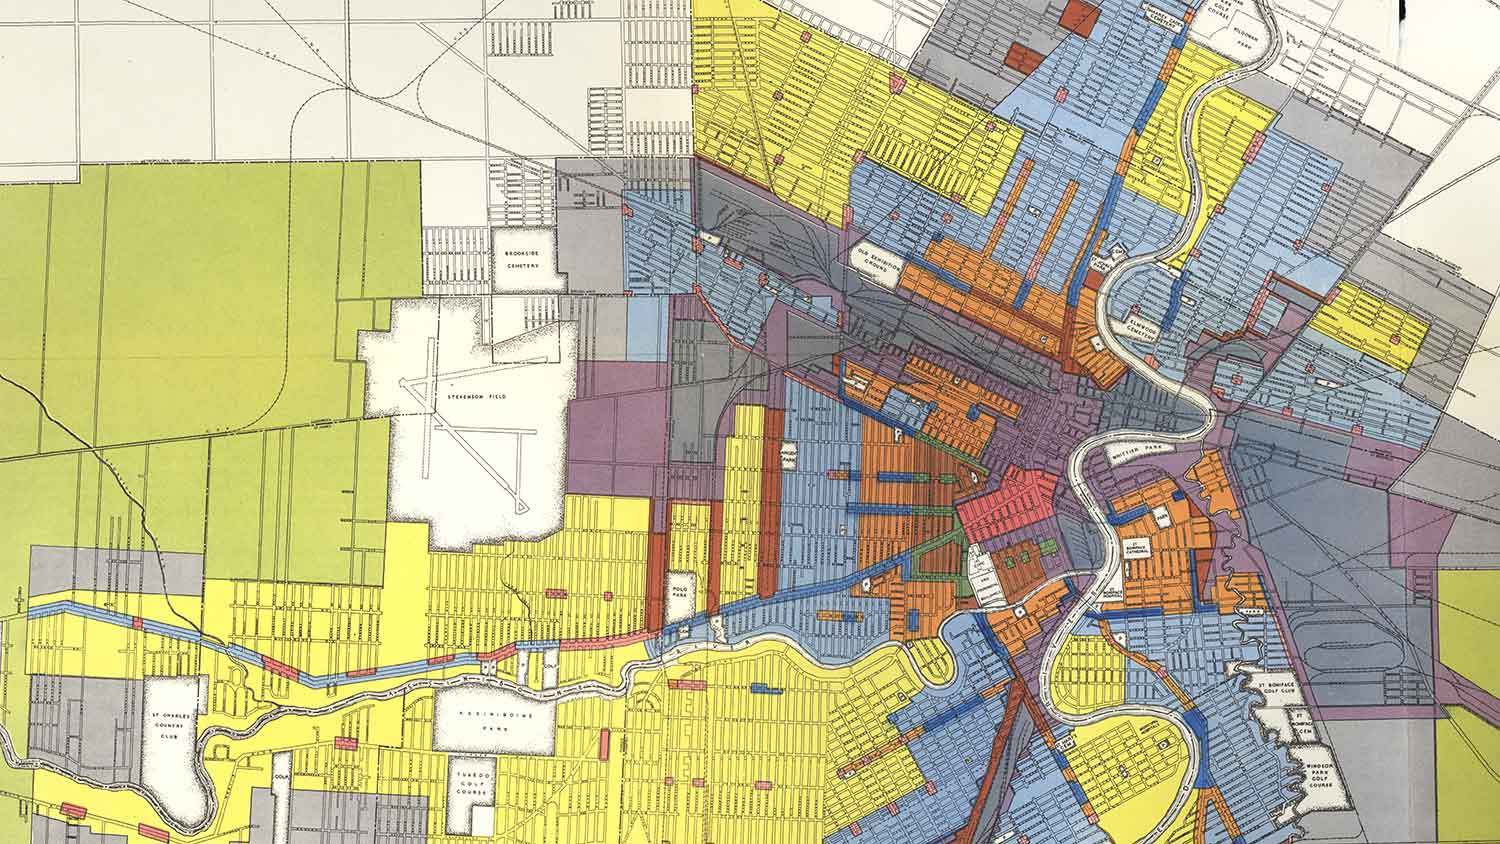 Find Any Property on a Zoning Map Cover Photo